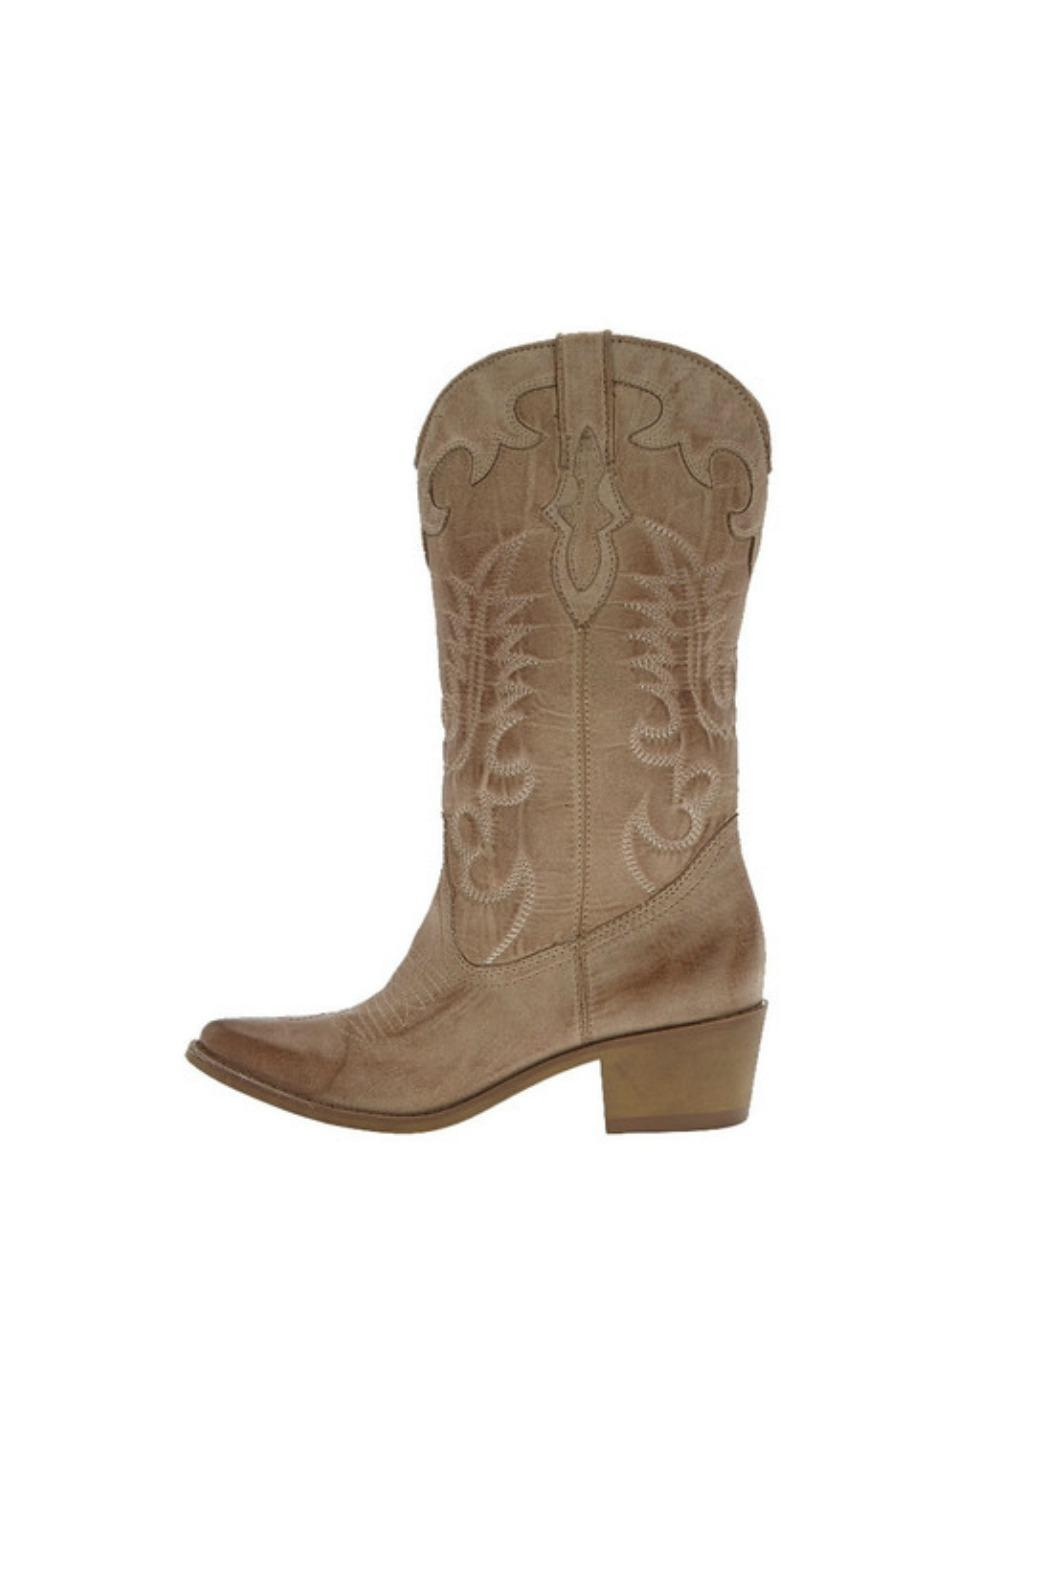 Coconuts Desperado Cowboy Boot from Louisiana by Bella ...